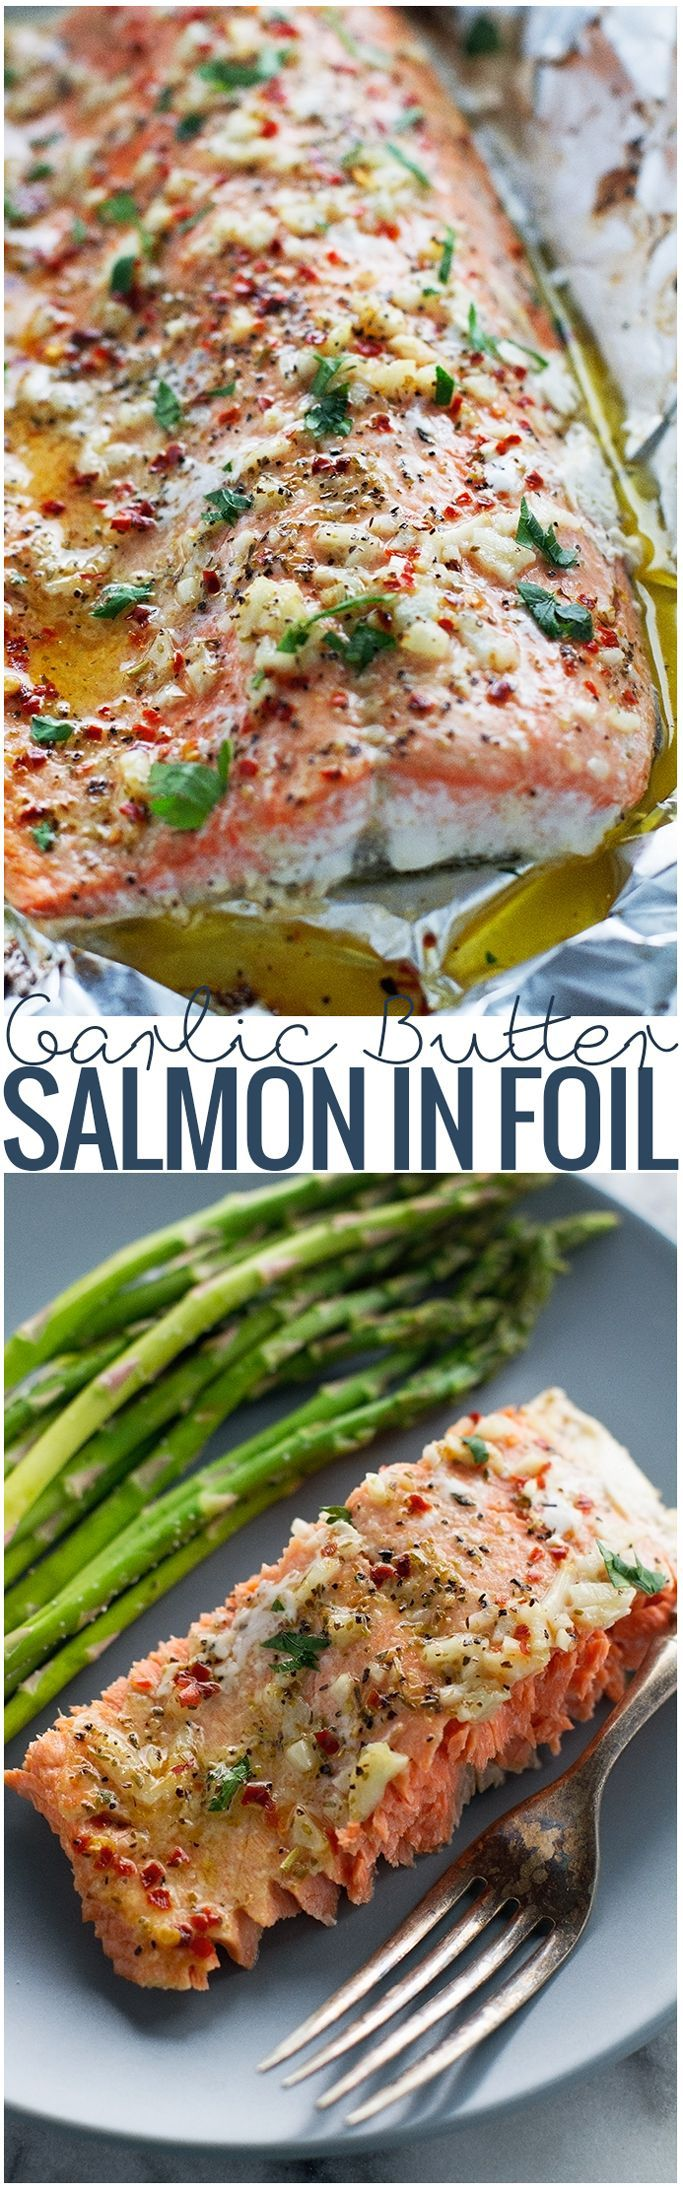 Garlic Butter Baked Salmon In Foil | Nosh-up